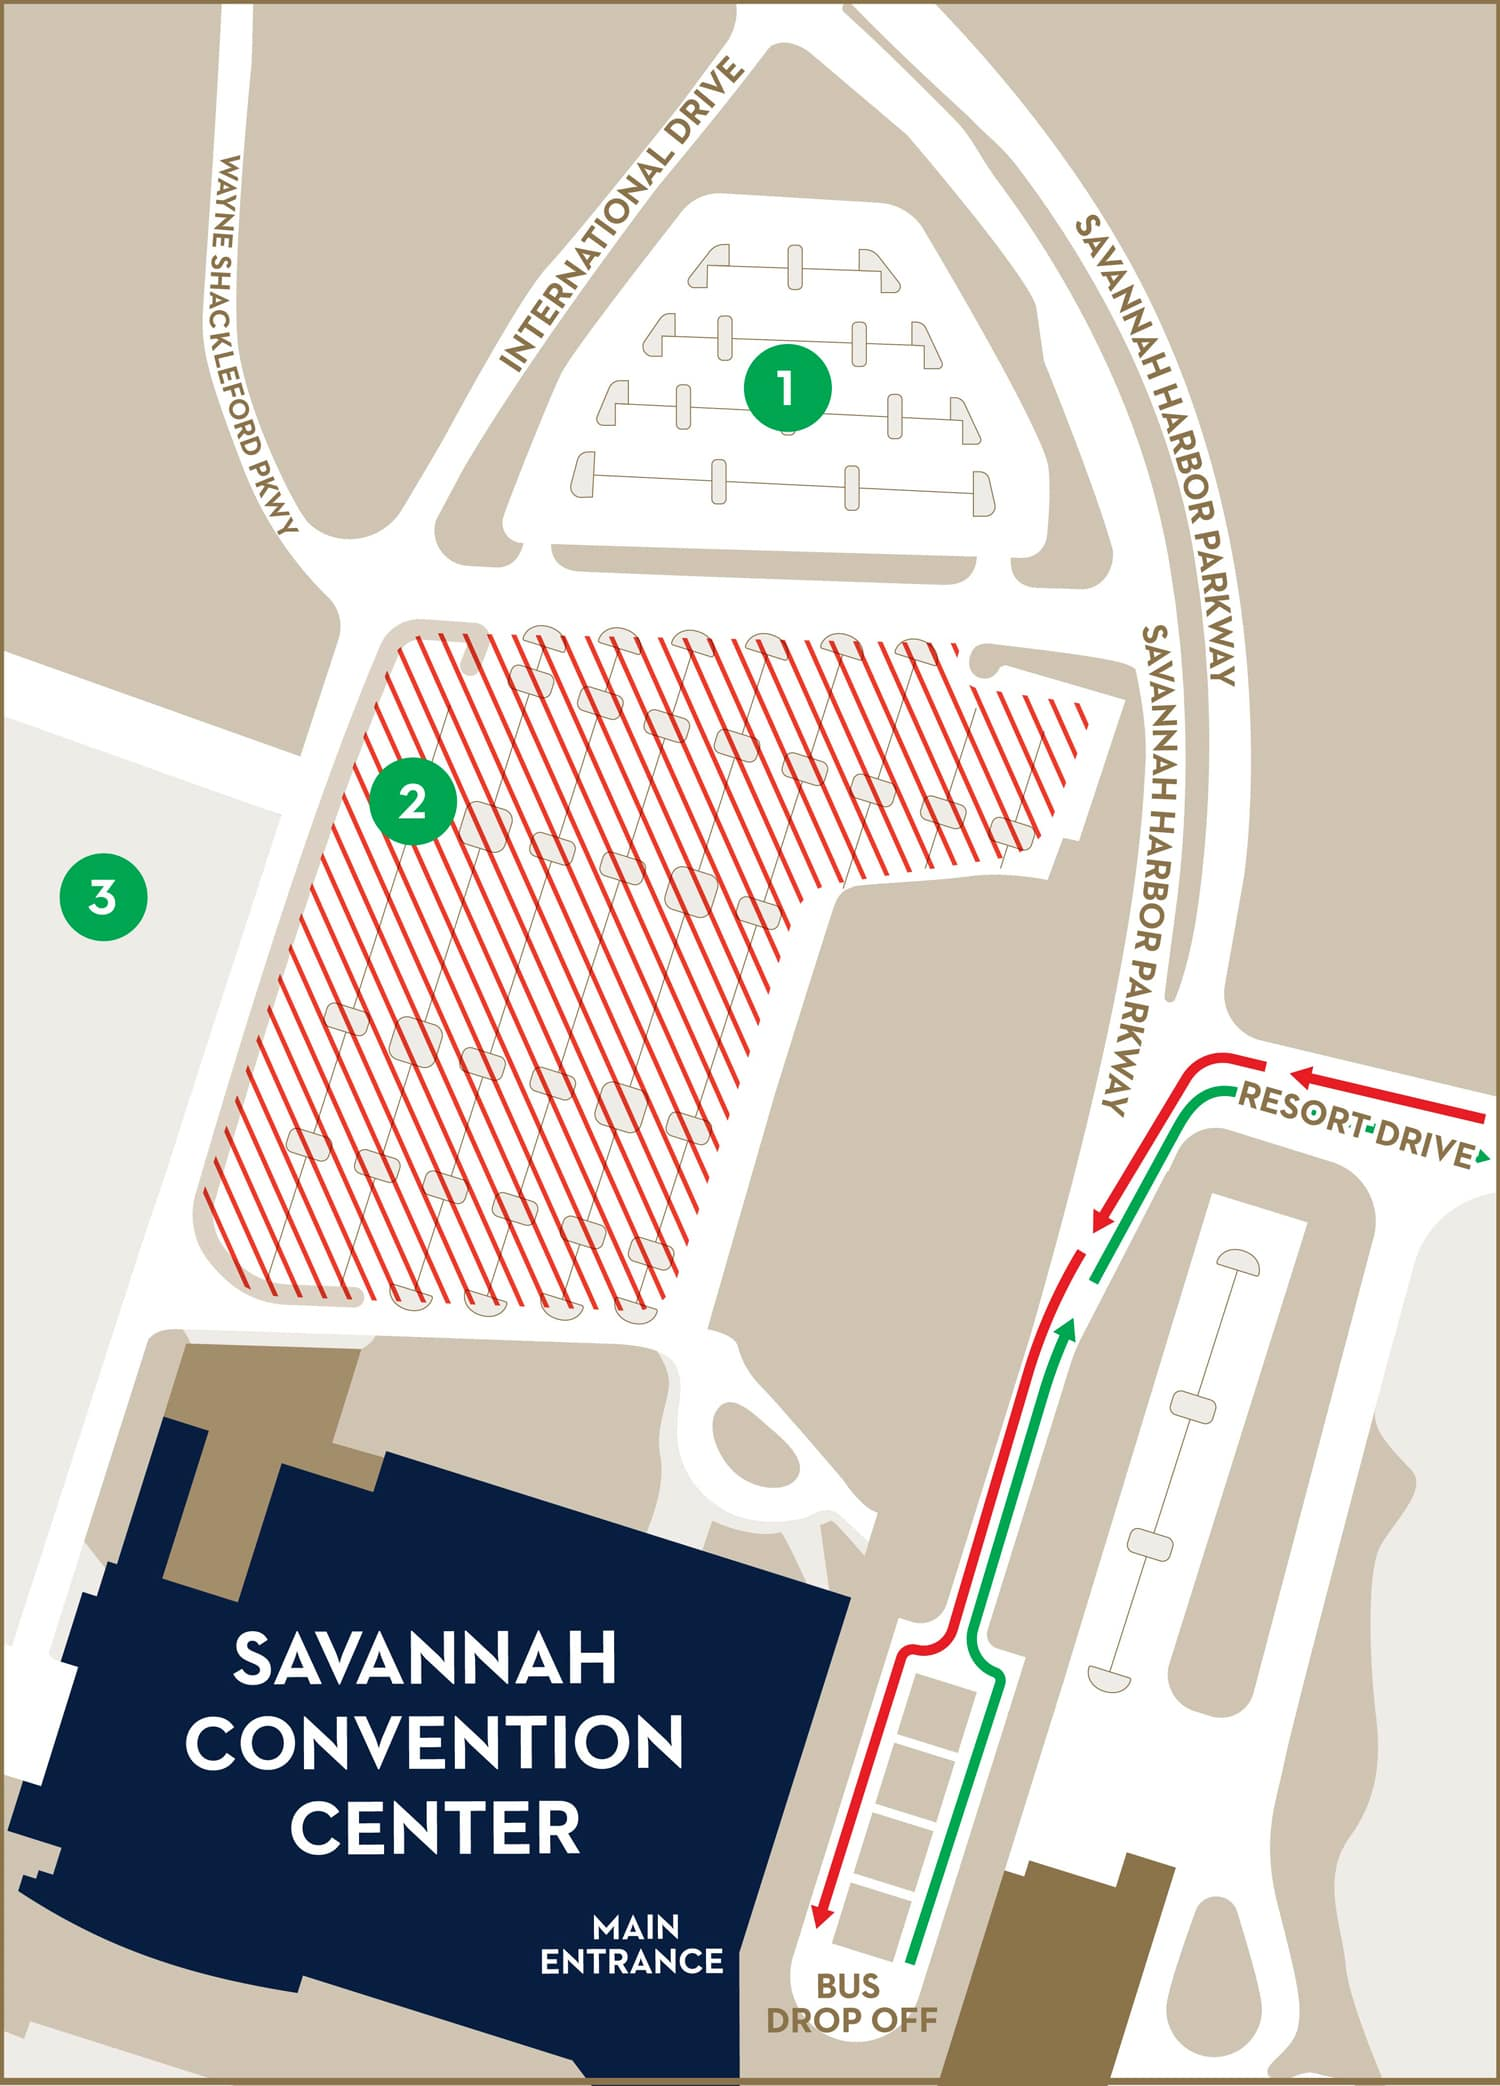 parking map of the convention center showing faculty and staff parking to the west side, graduate and guest parking to the north, and ada accessible parking and entrance to the east side of the convention center